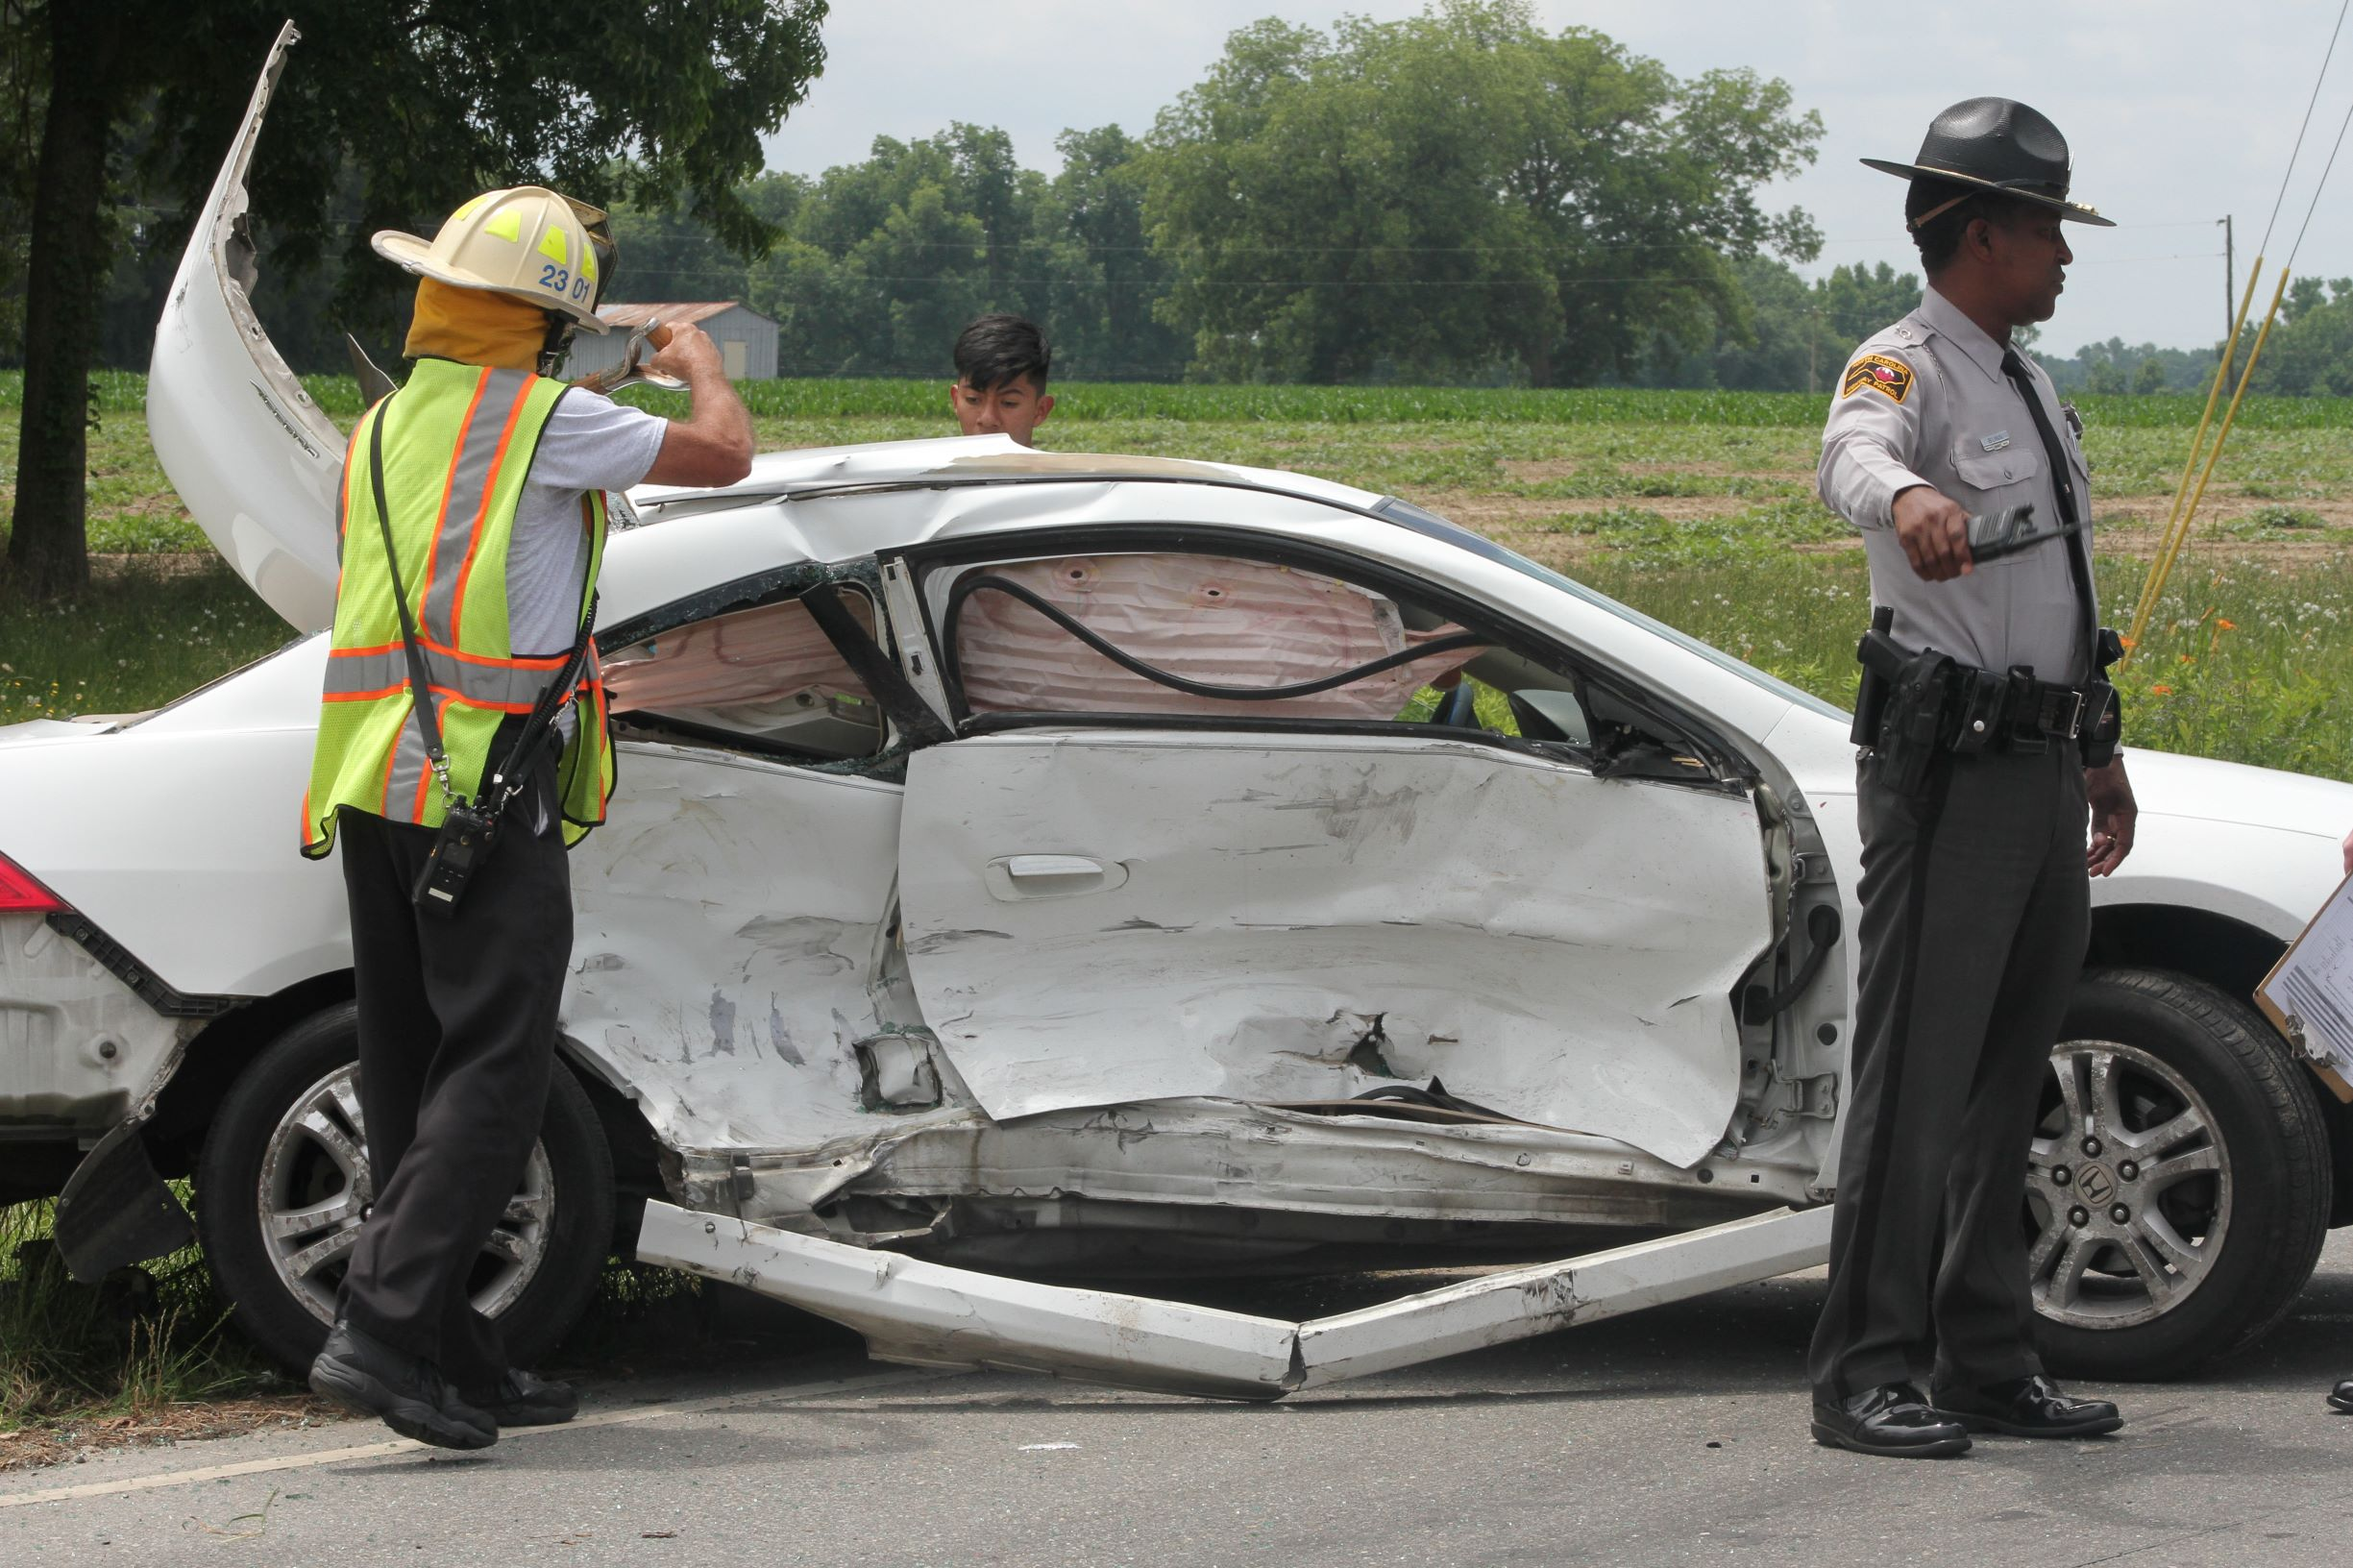 Vehicles Collide At Mount Olive Intersection (PHOTOS)